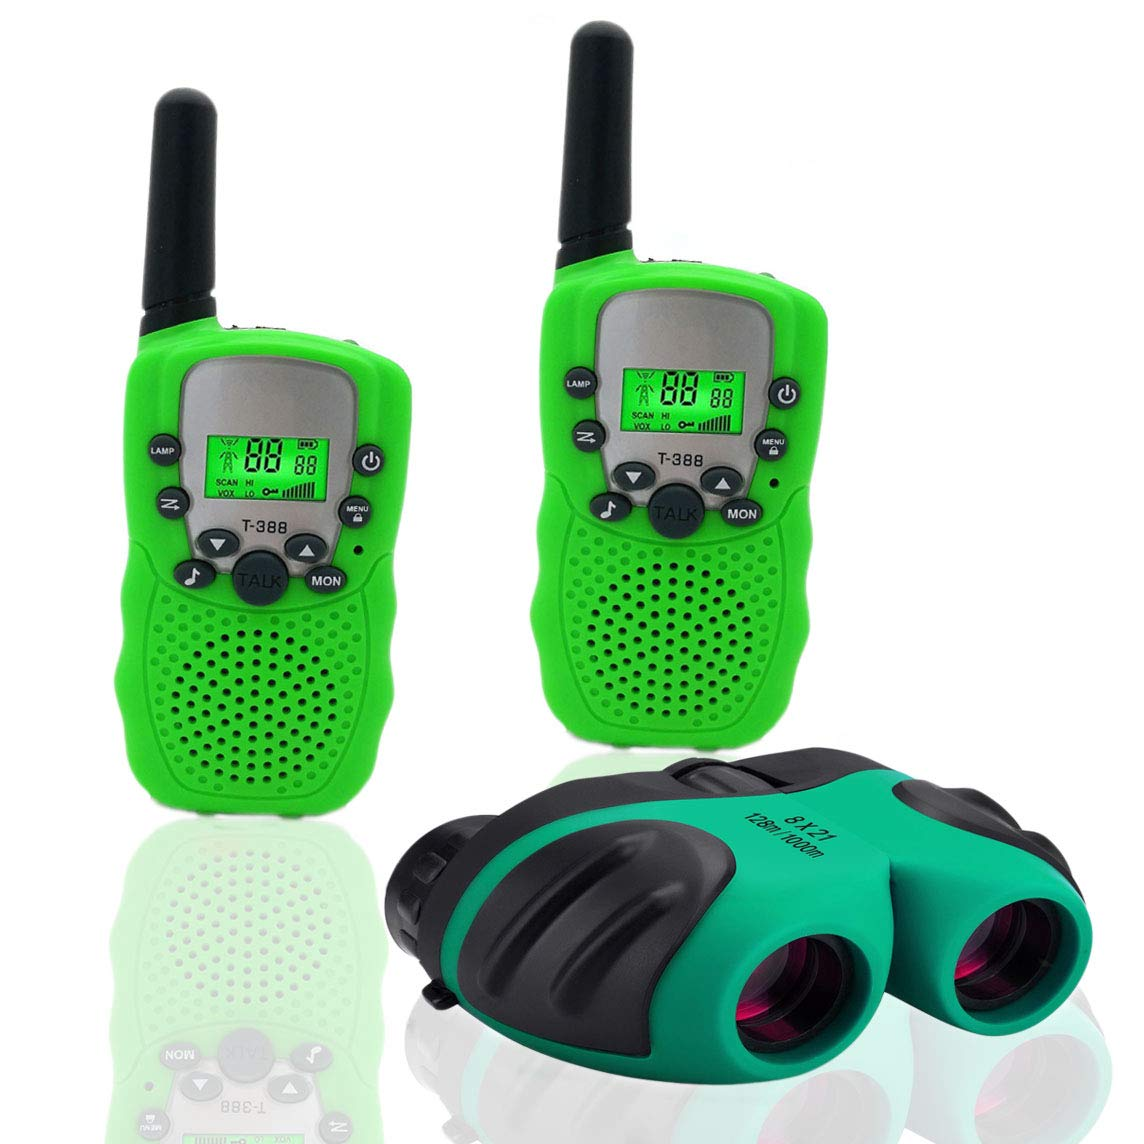 BIBOYELF Toys for 4-5 Year Old Boys,Long Range Walkie Talkies for Kids and Compact Telescope Boys Gifts 4-8 Year Old to Bird Watching,Outdoor Toys Games Gifts for 3-12 Year Old Boys Presents,Green by BIBOYELF (Image #1)